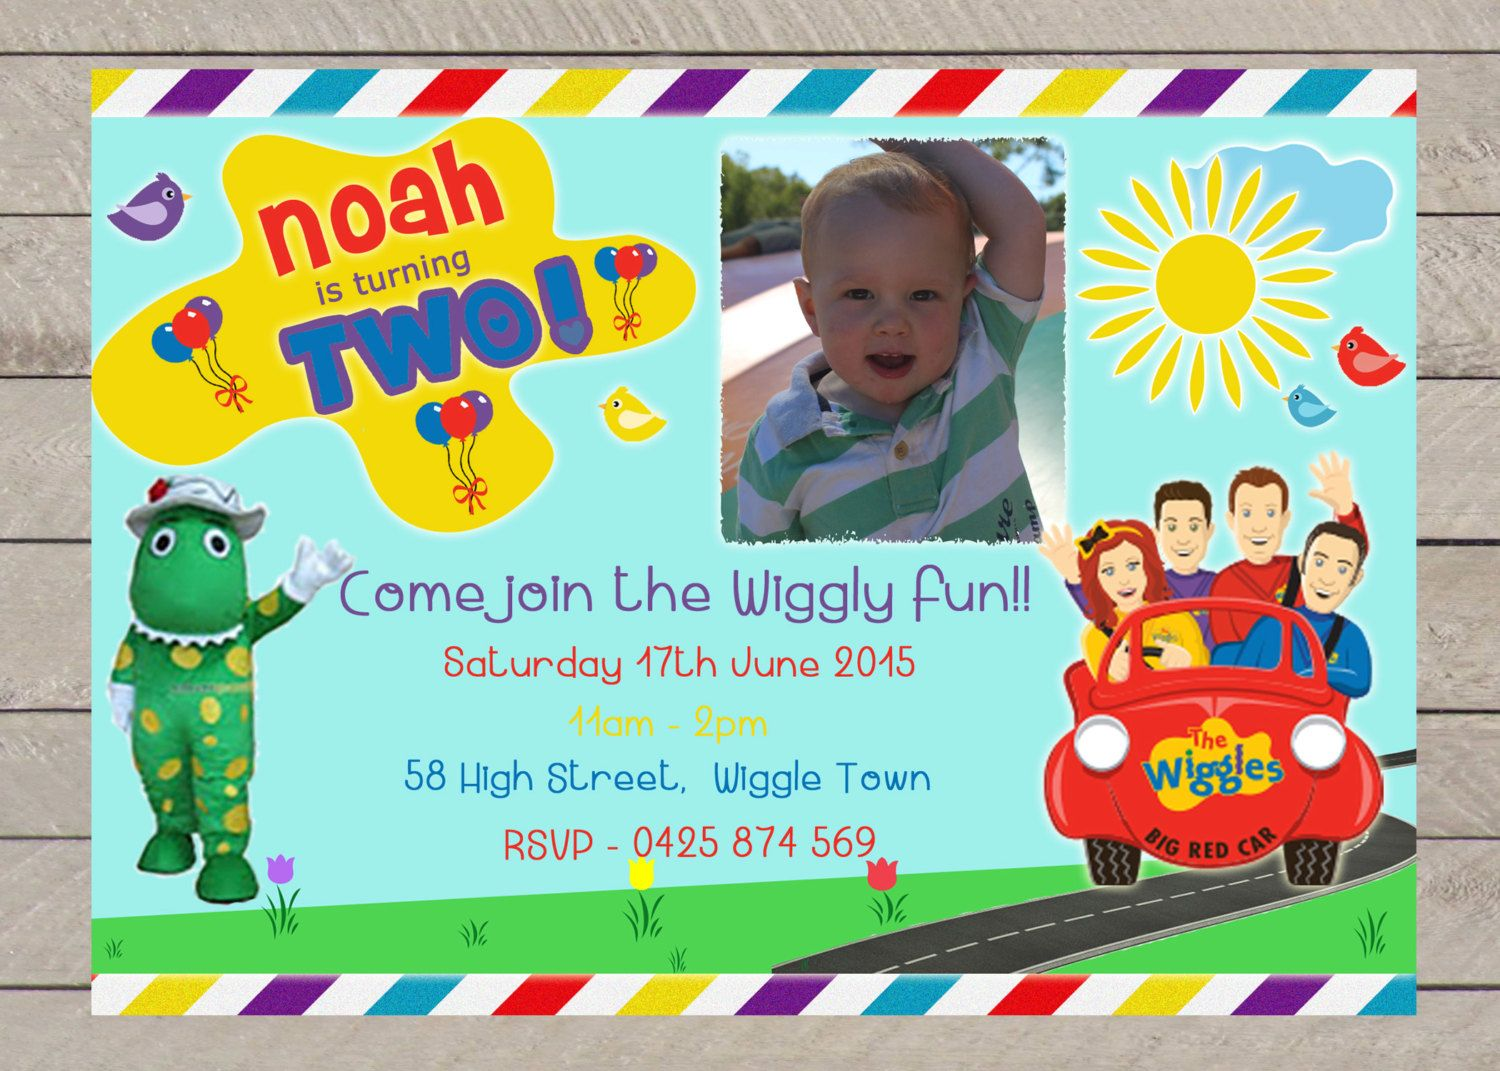 Boys WIGGLES Birthday Party Invitation Personalized Digital print